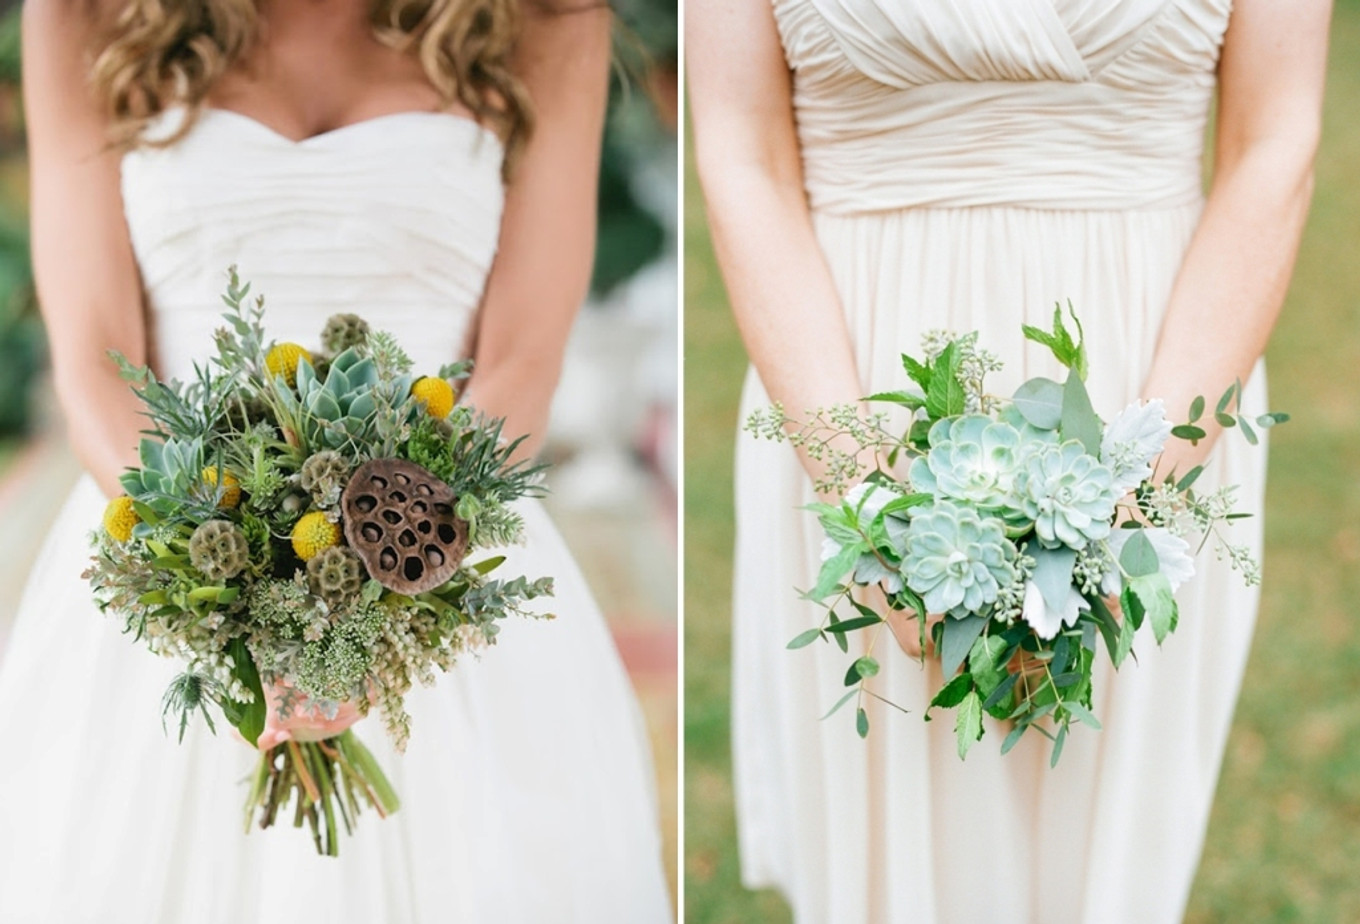 How to choose the perfect wedding bouquet bridestory blog add to board izmirmasajfo